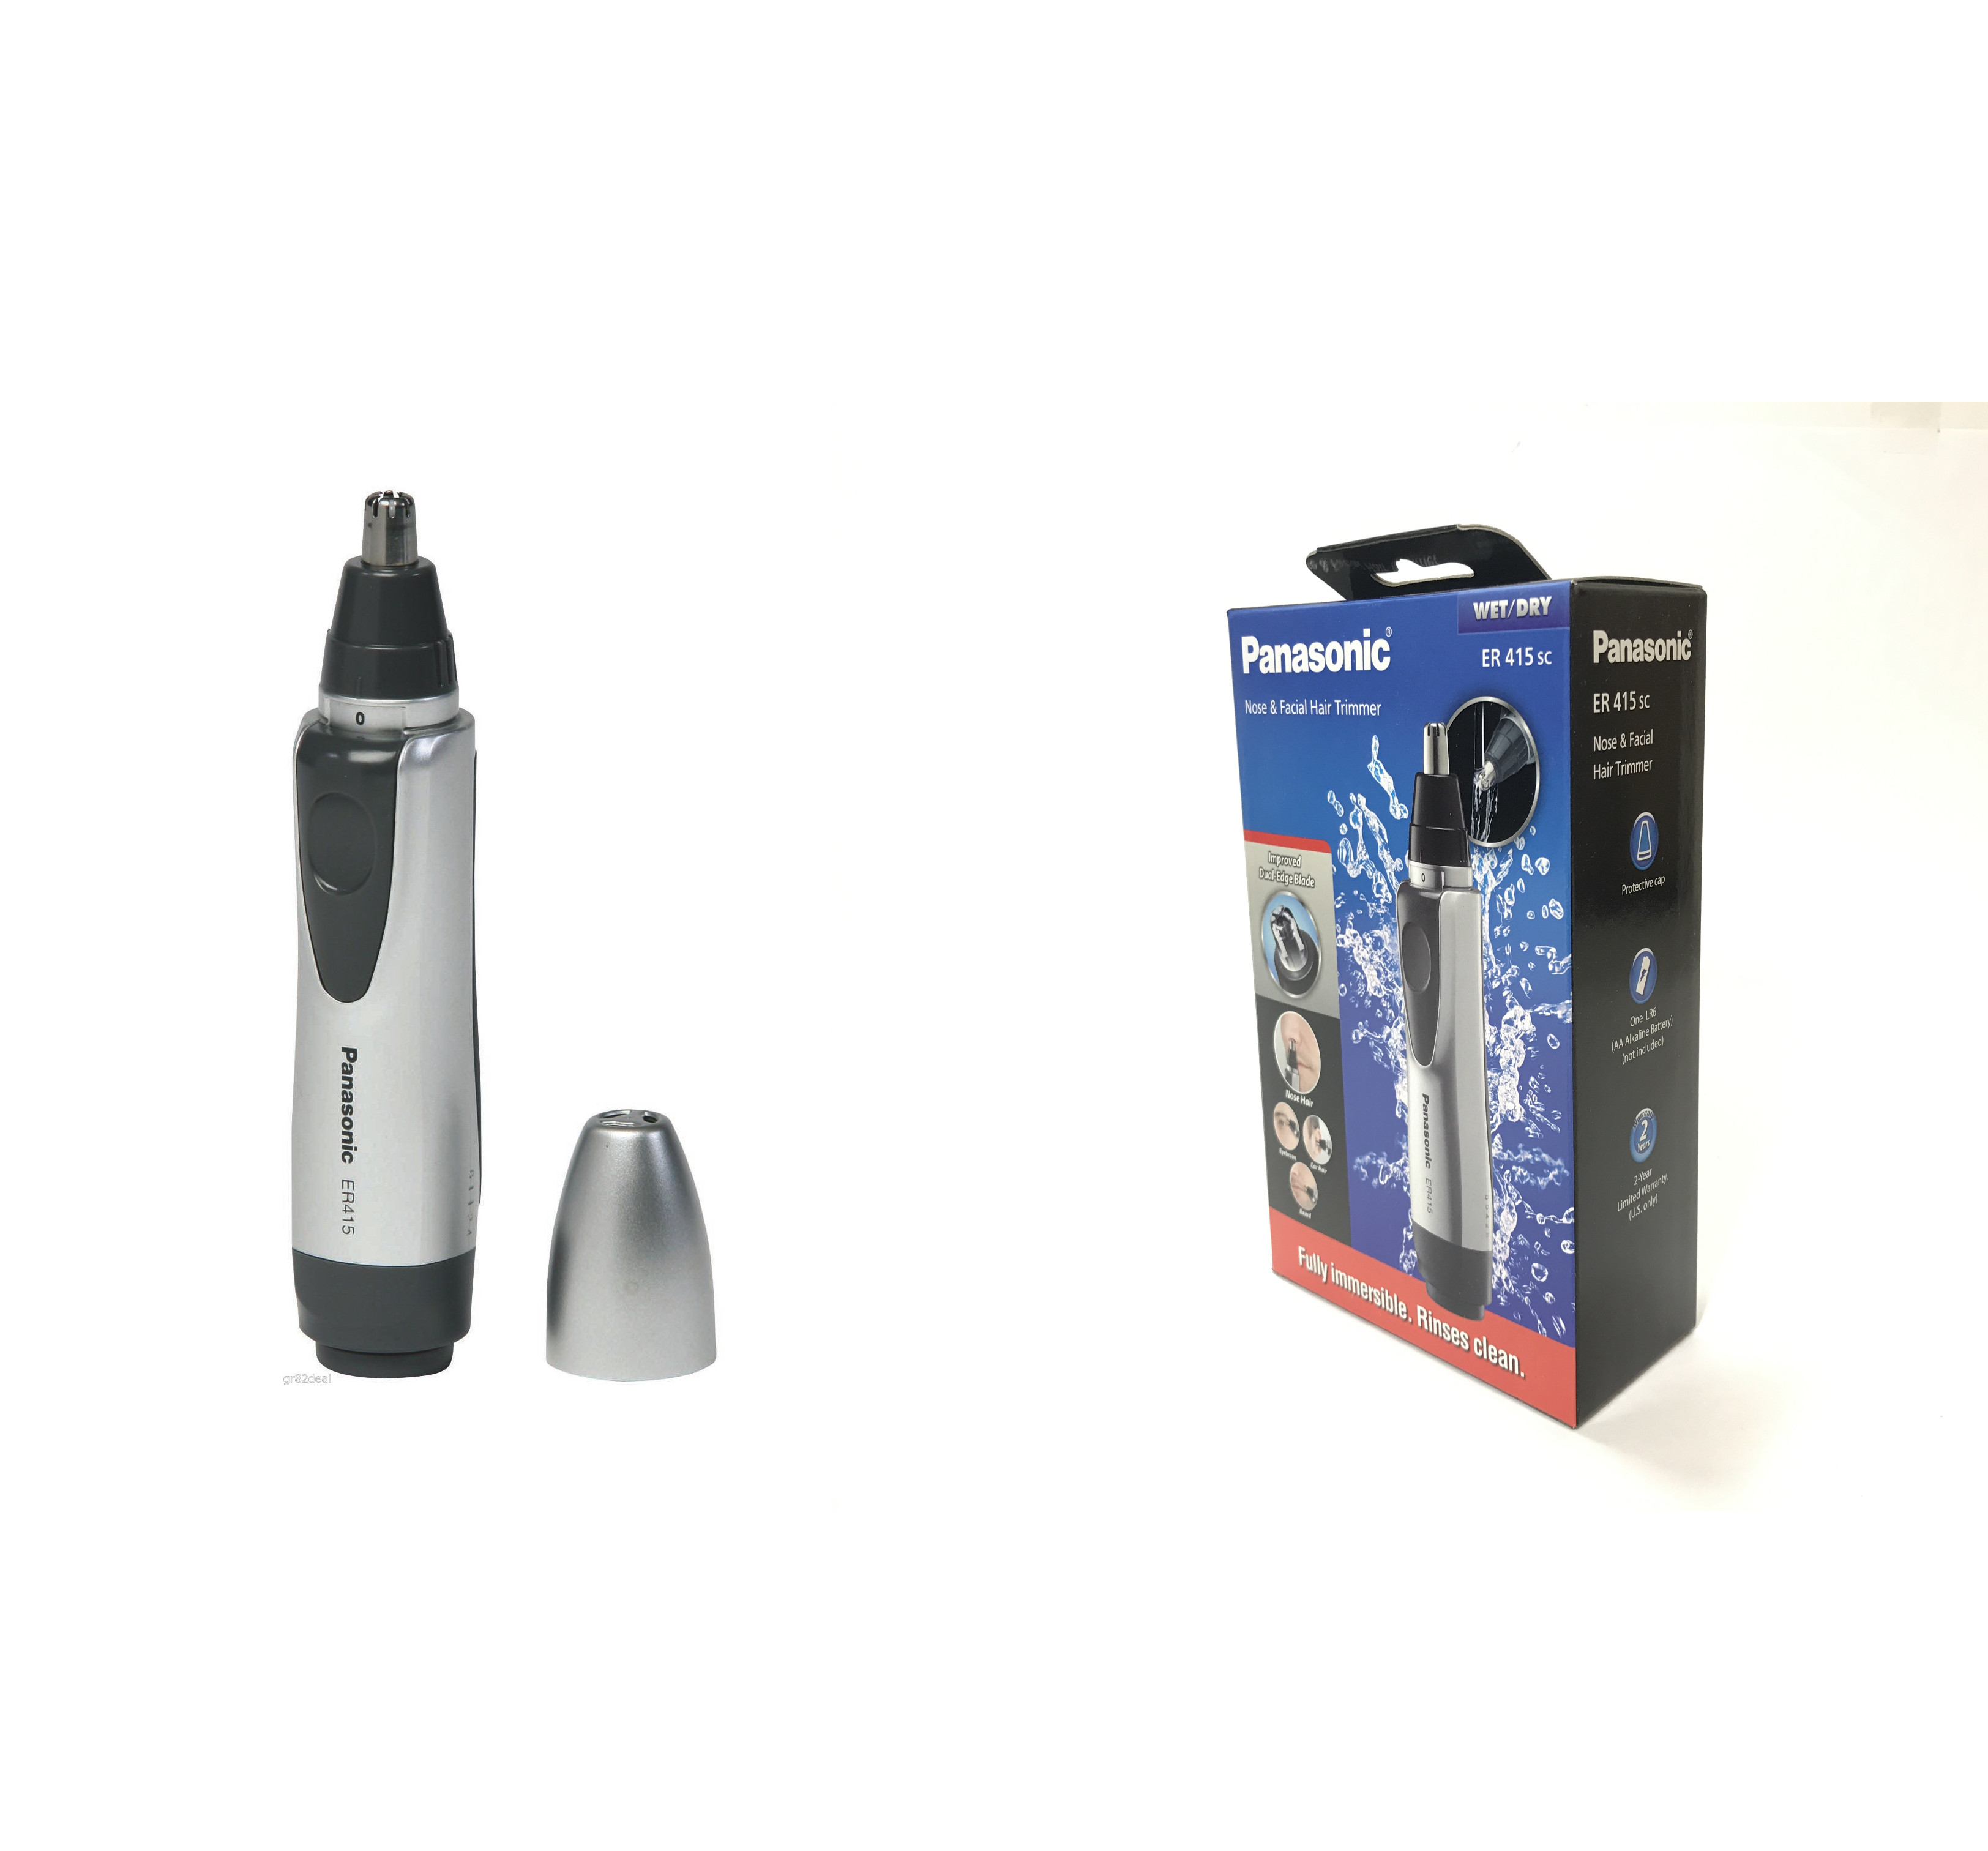 Panasonic Battery-Operated Nose and Facial Hair Trimmer